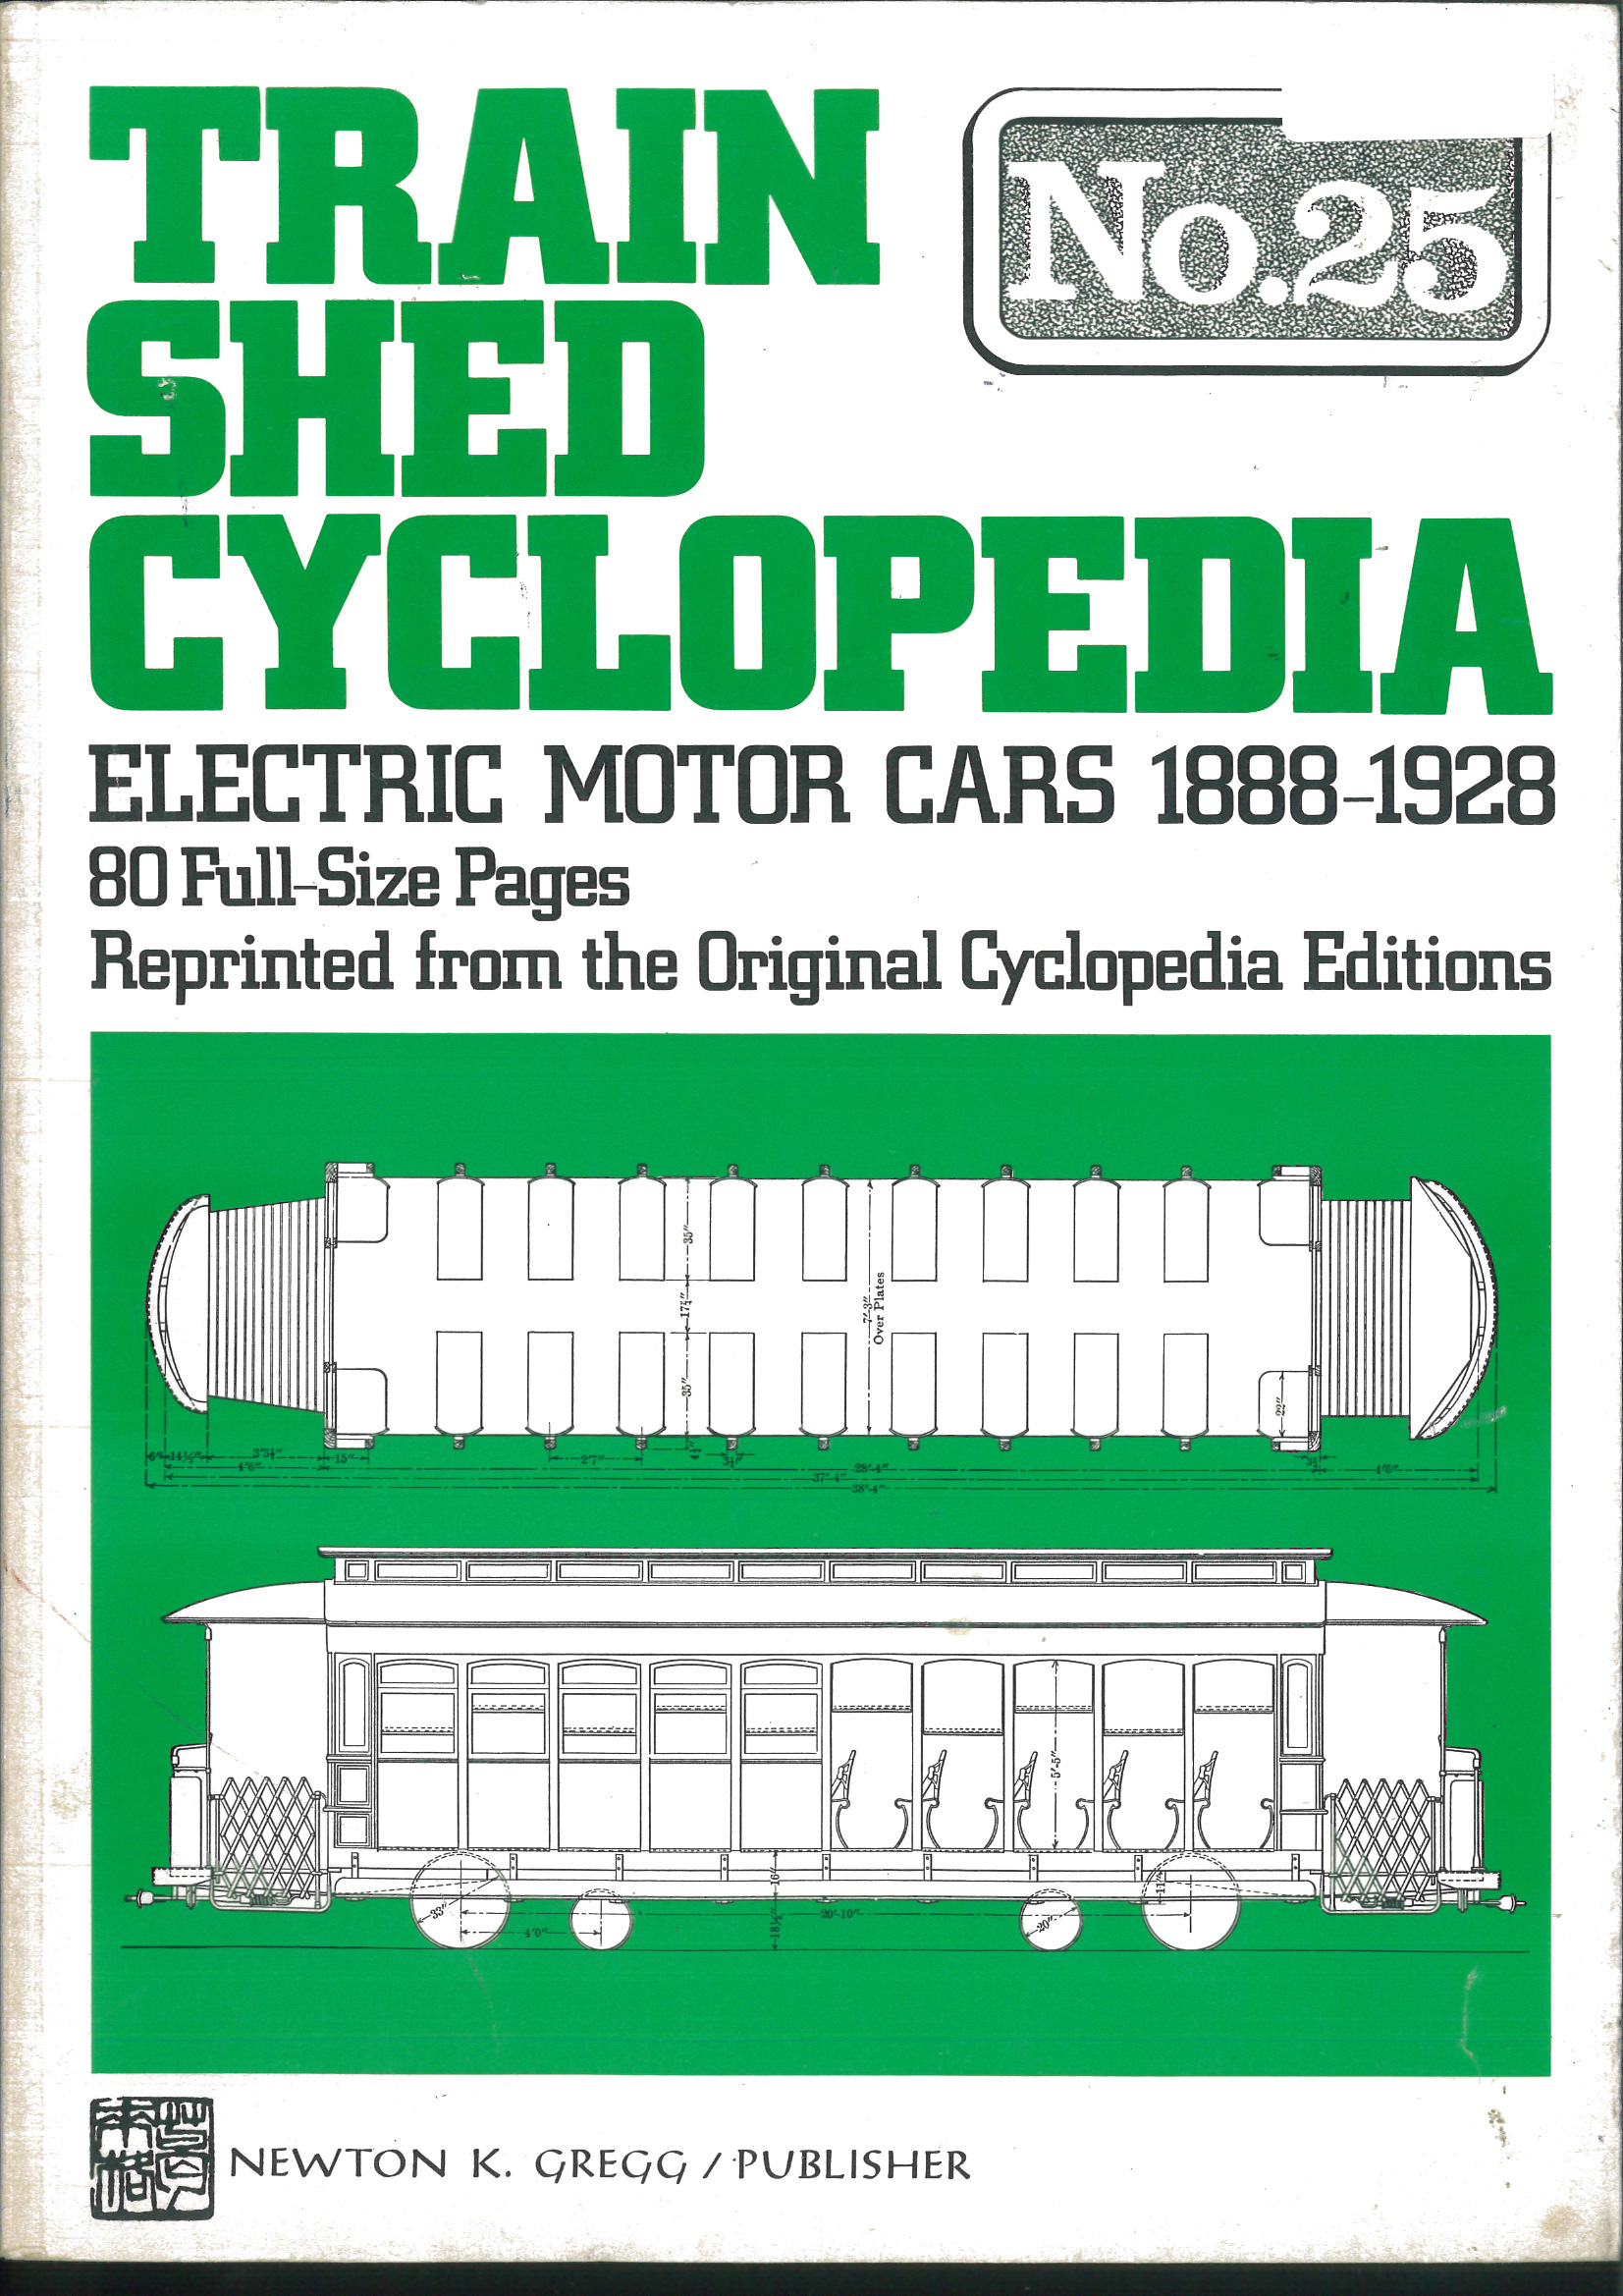 Train Shed Cyclopedia No. 25. Electric Motor Cars 1888-1928  | günstig bestellen bei Modelleisenbahn Center  MCS Vertriebs GmbH